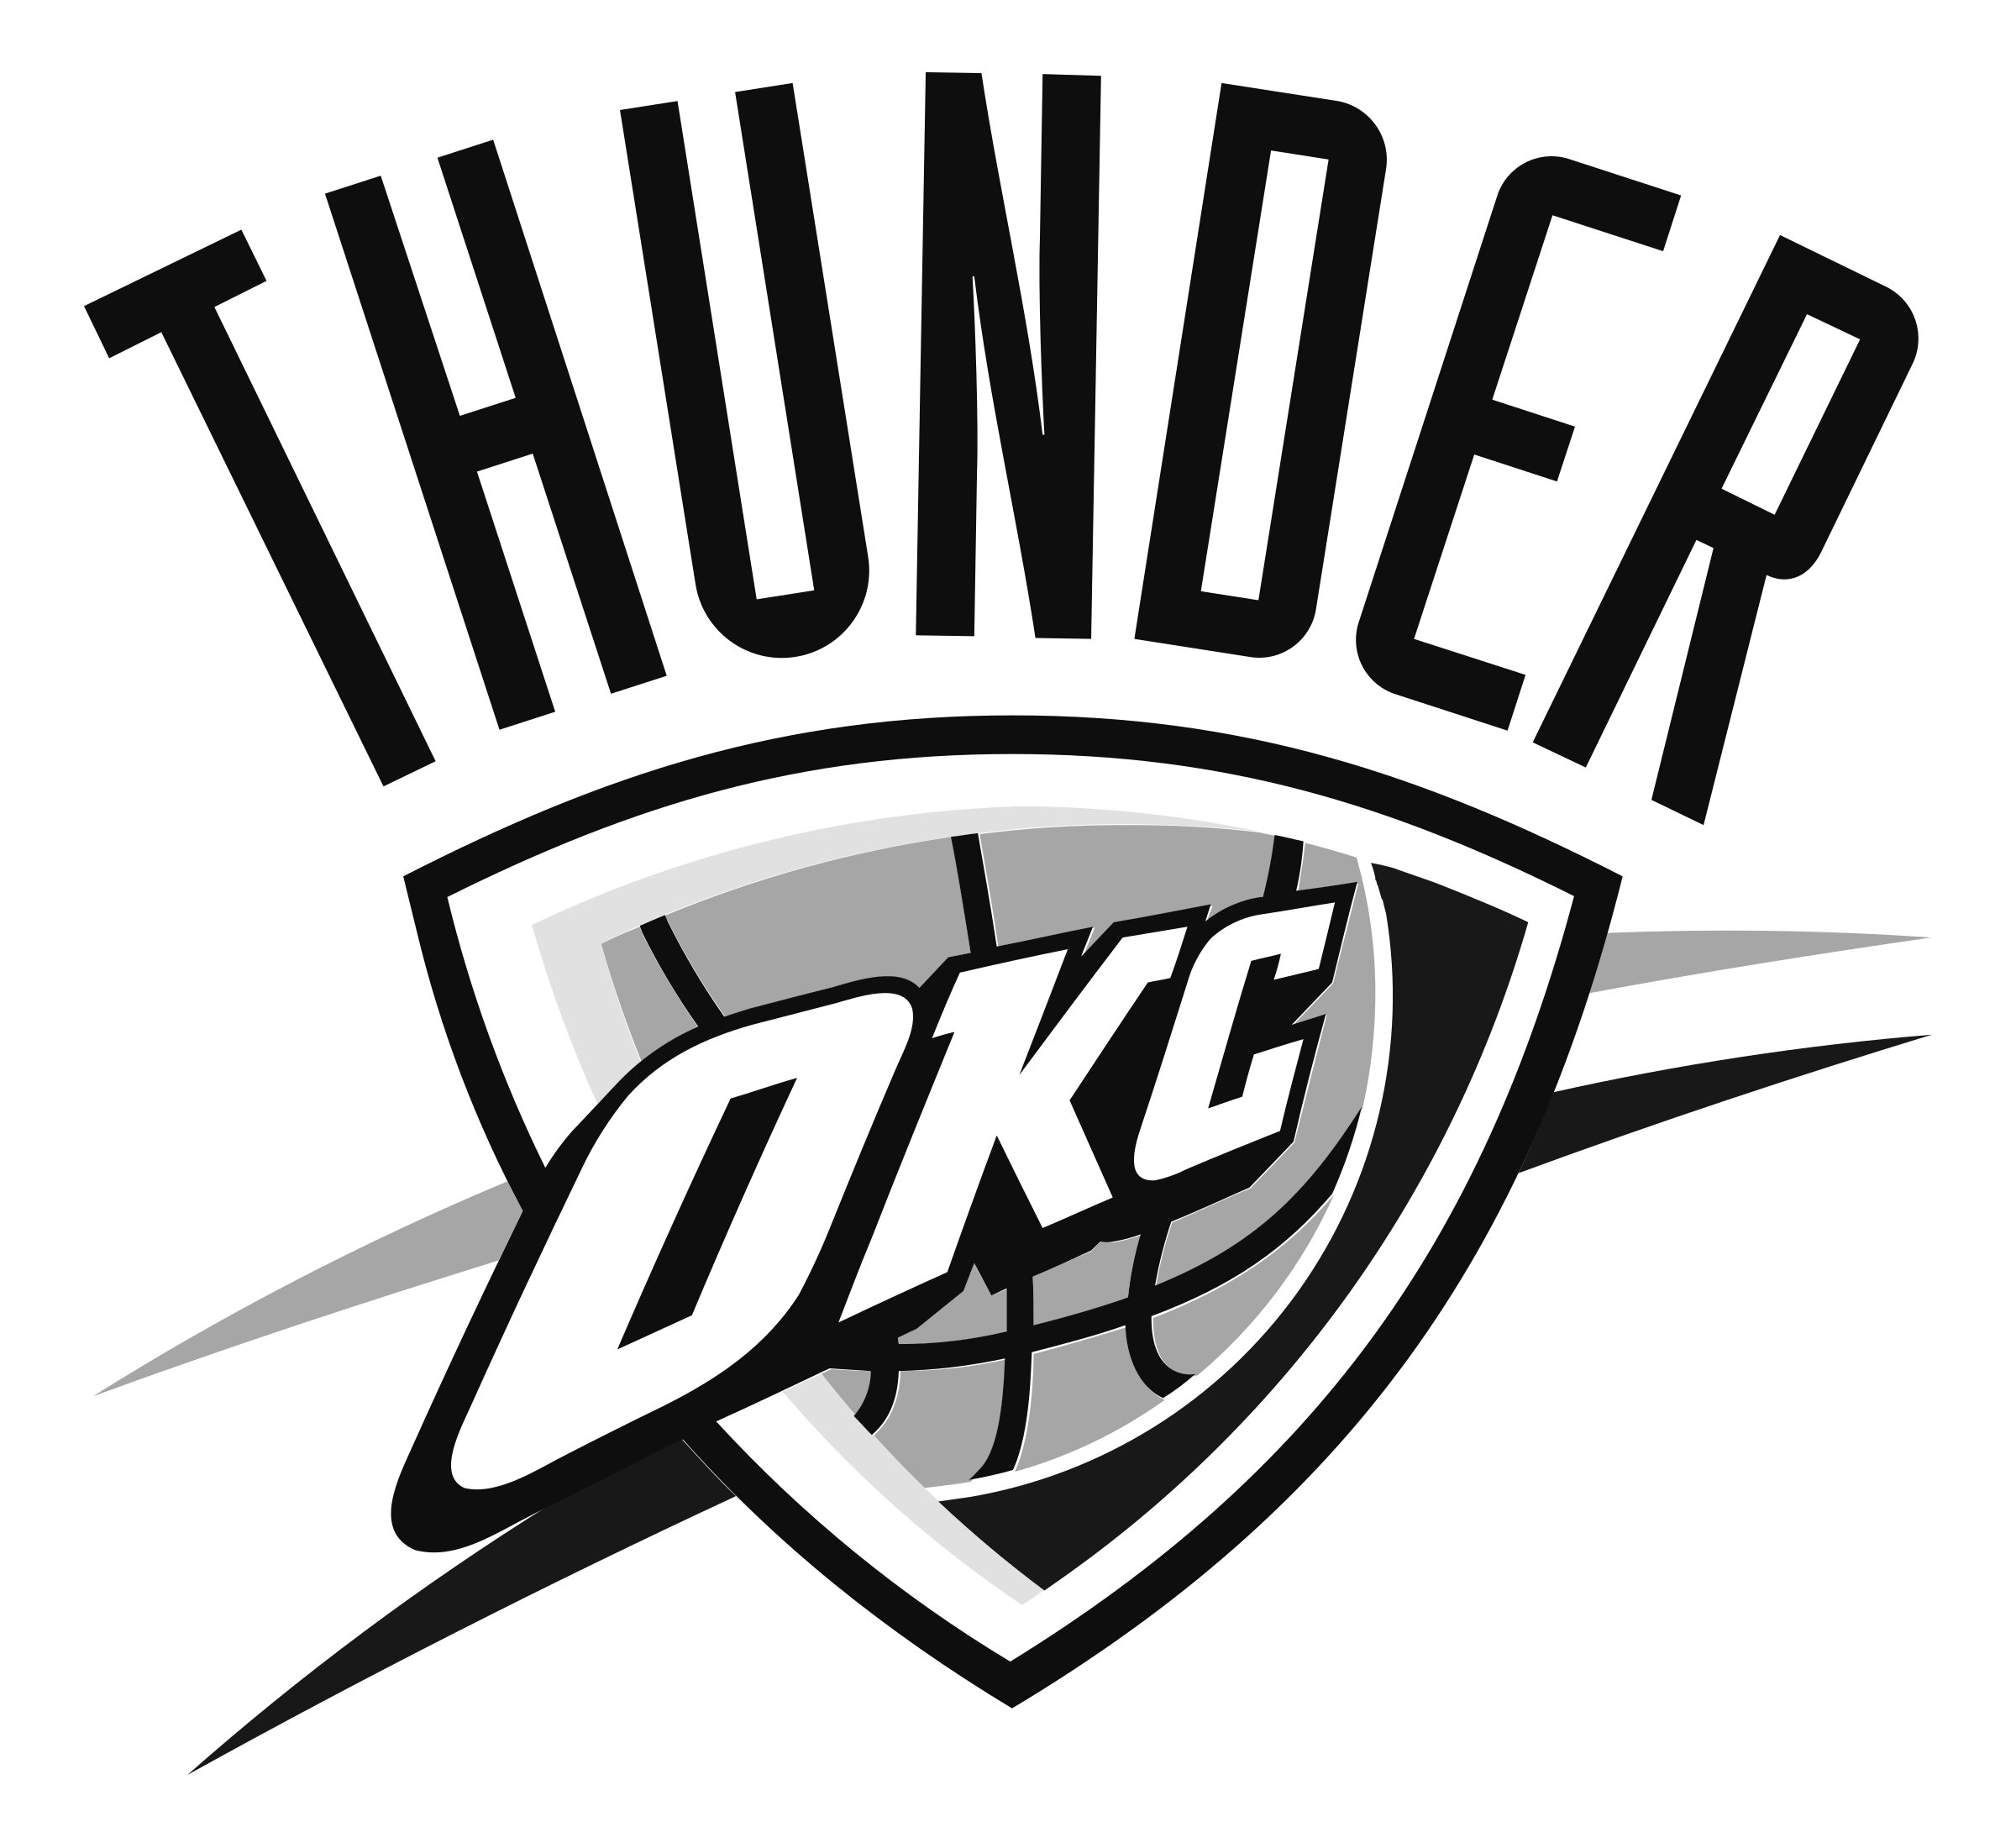 Oklahoma City Thunder logo black and whi-Oklahoma City Thunder logo black and white-3